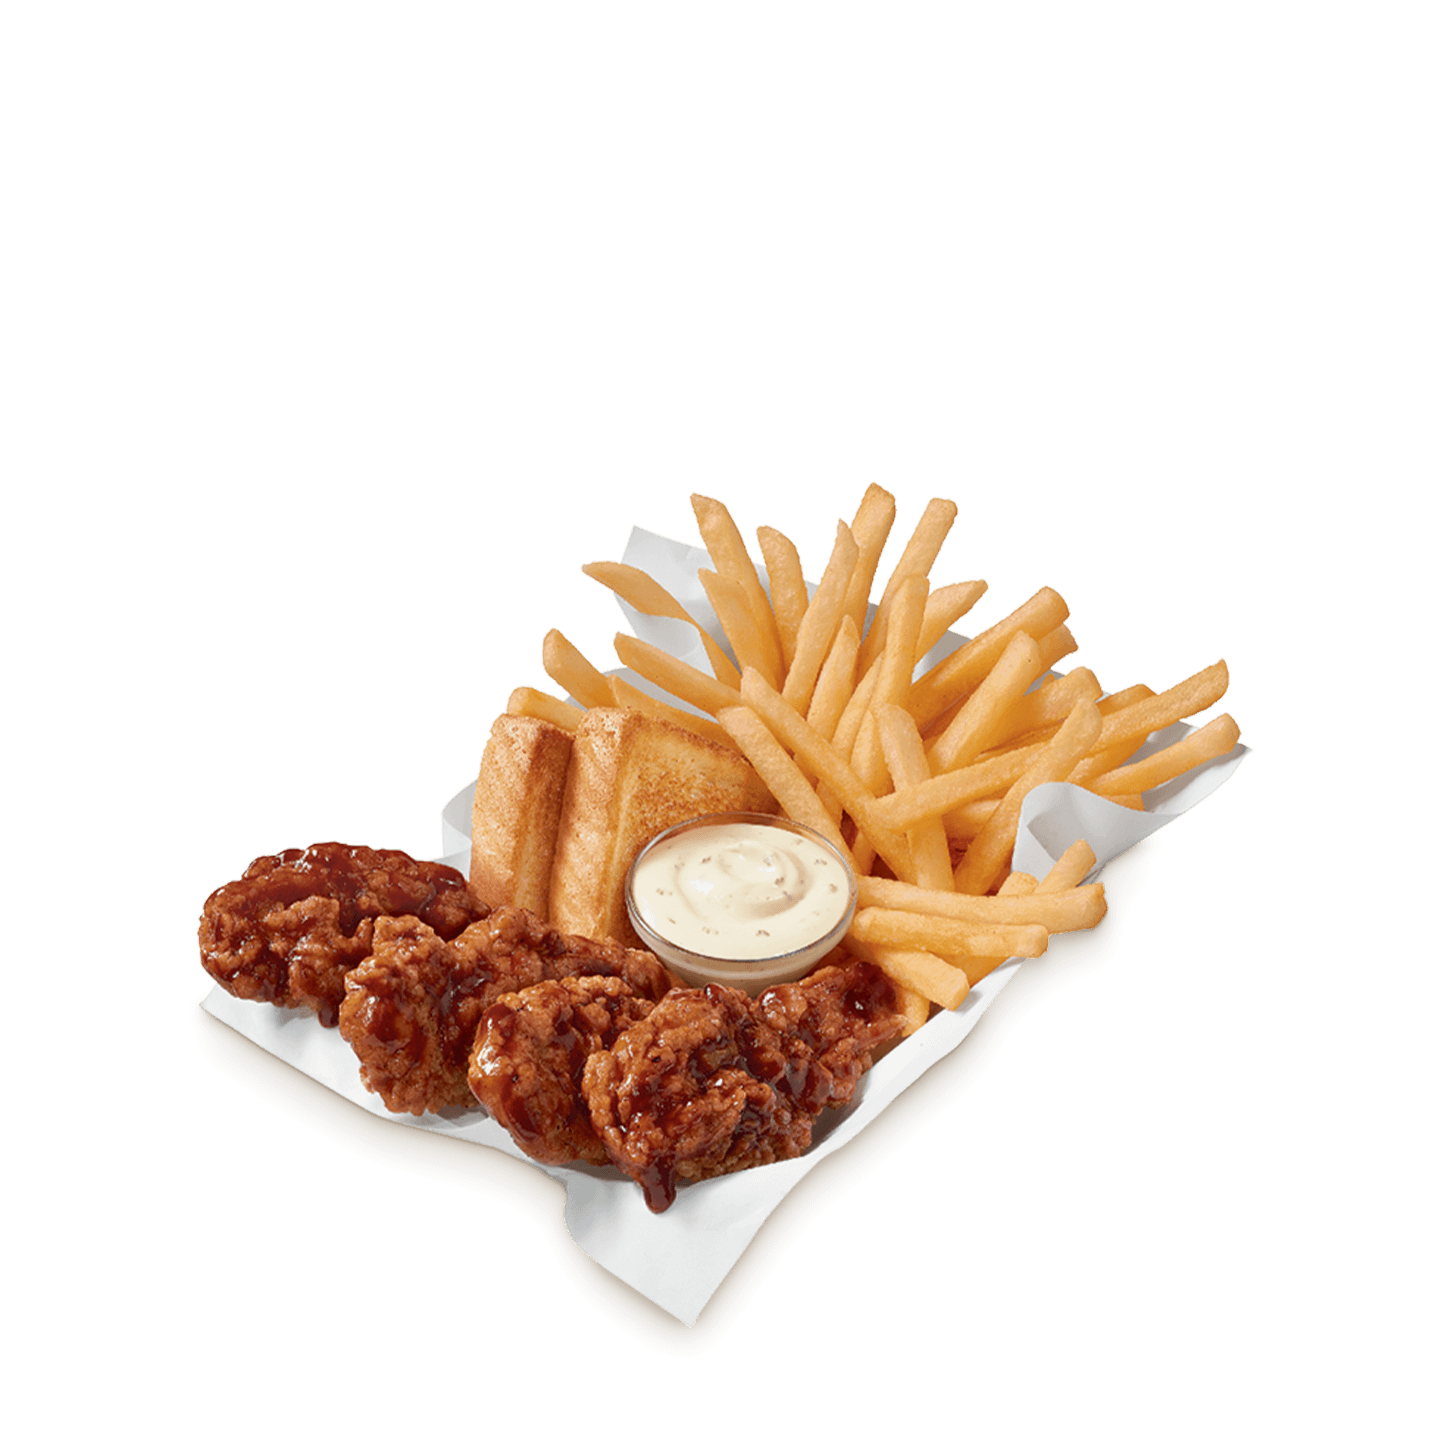 4 piece Honey BBQ chicken strips with fries, toast and dipping sauce